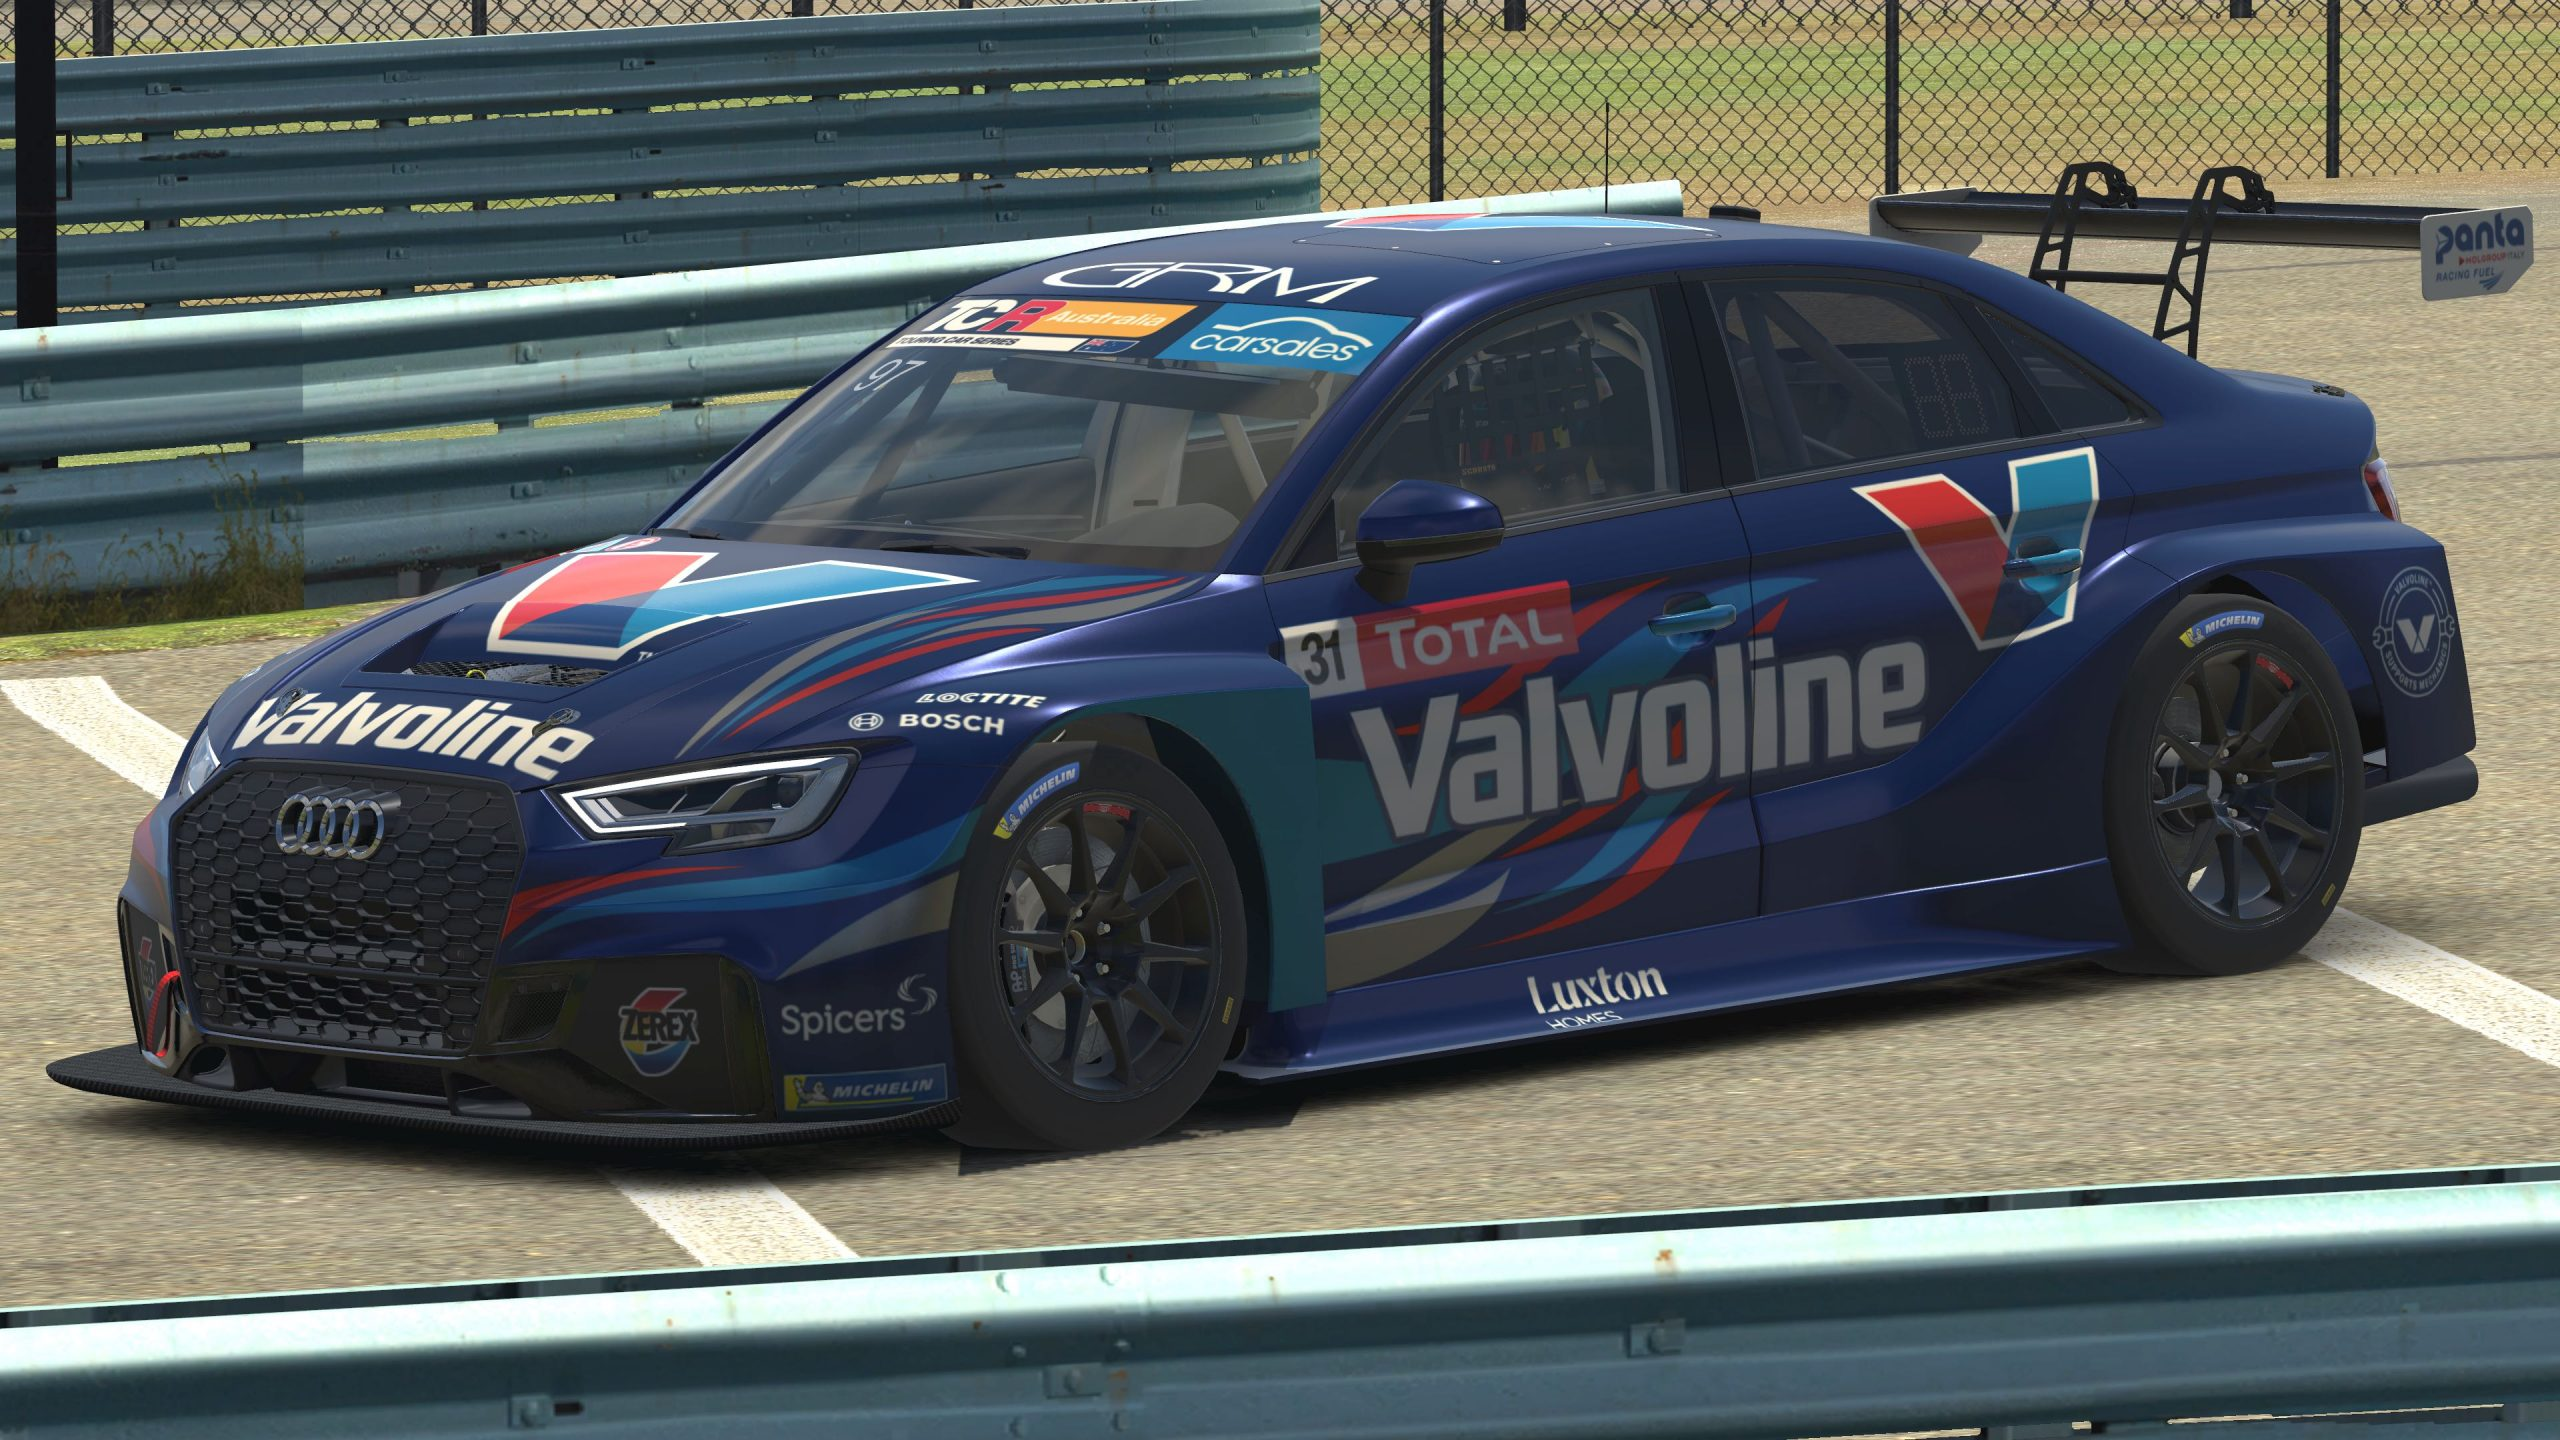 Stunning livery reveal for James Golding's ARG Cup entry